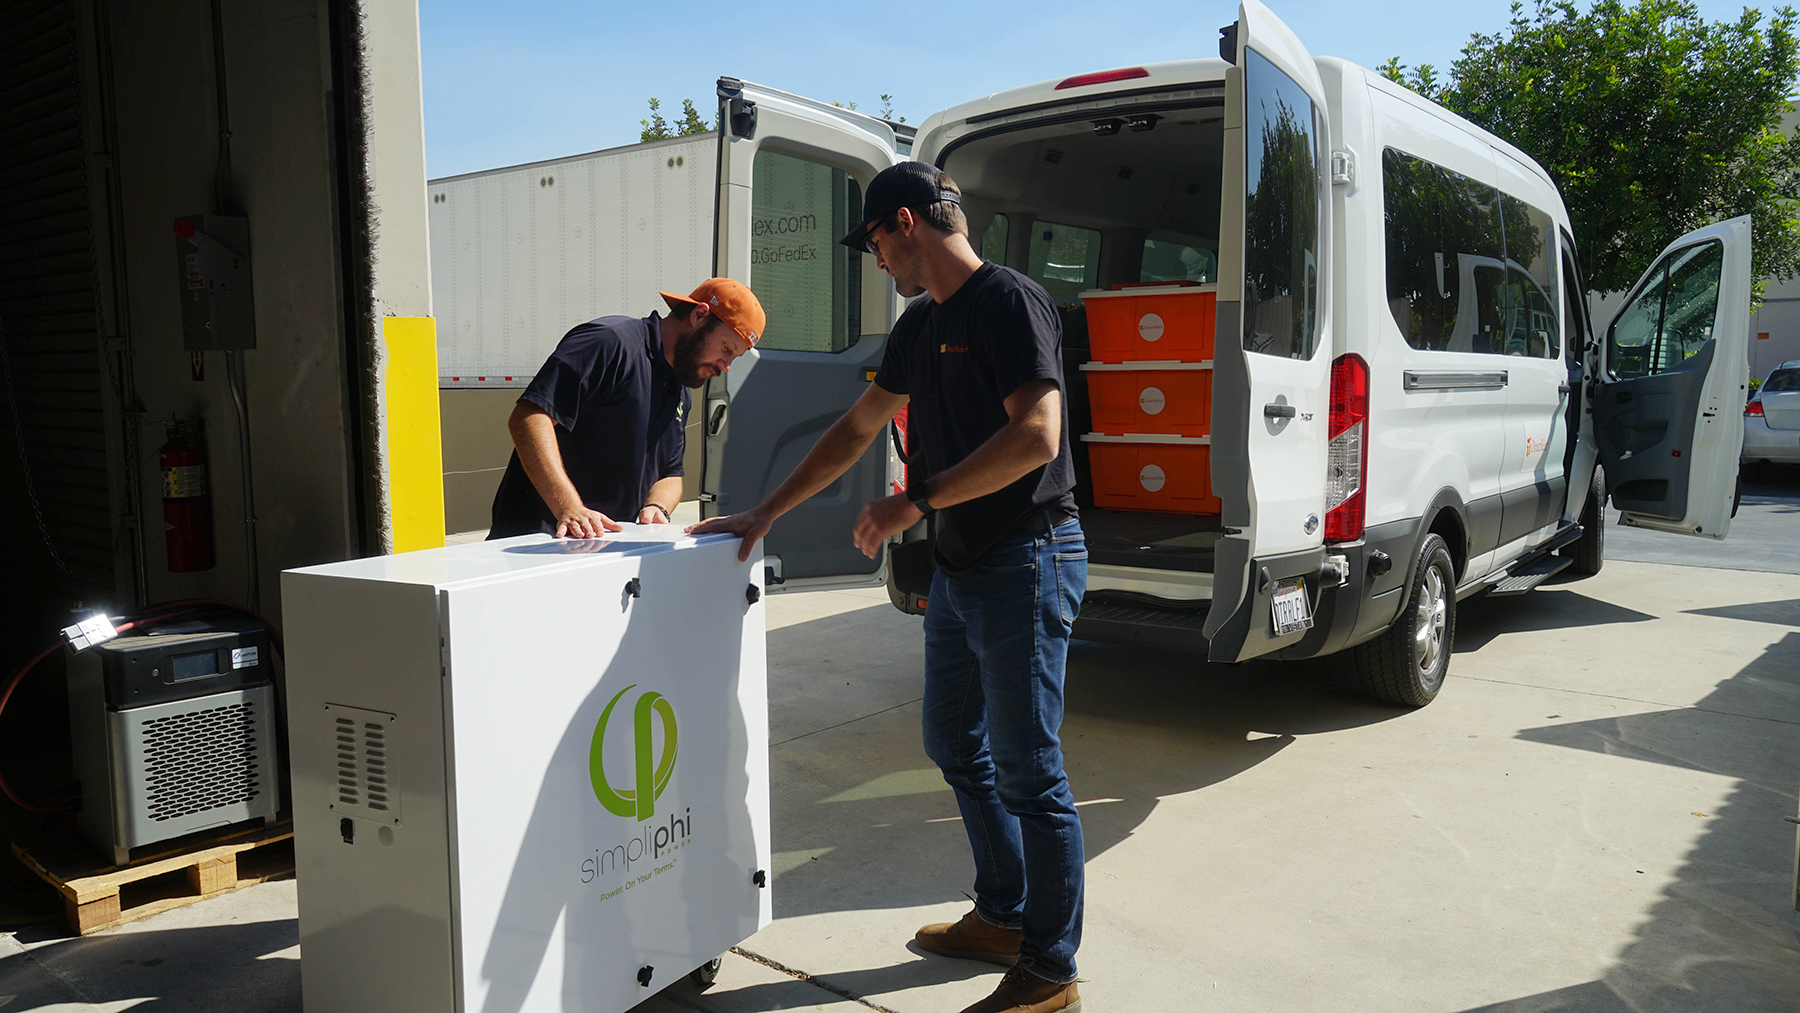 Direct Relief's Emergency Response team delivers a generator to the Free Clinic of Simi Valley. The generator provided the clinic with emergency backup power during the Saddleridge Fire. (Amarica Rafanelli/Direct Relief)